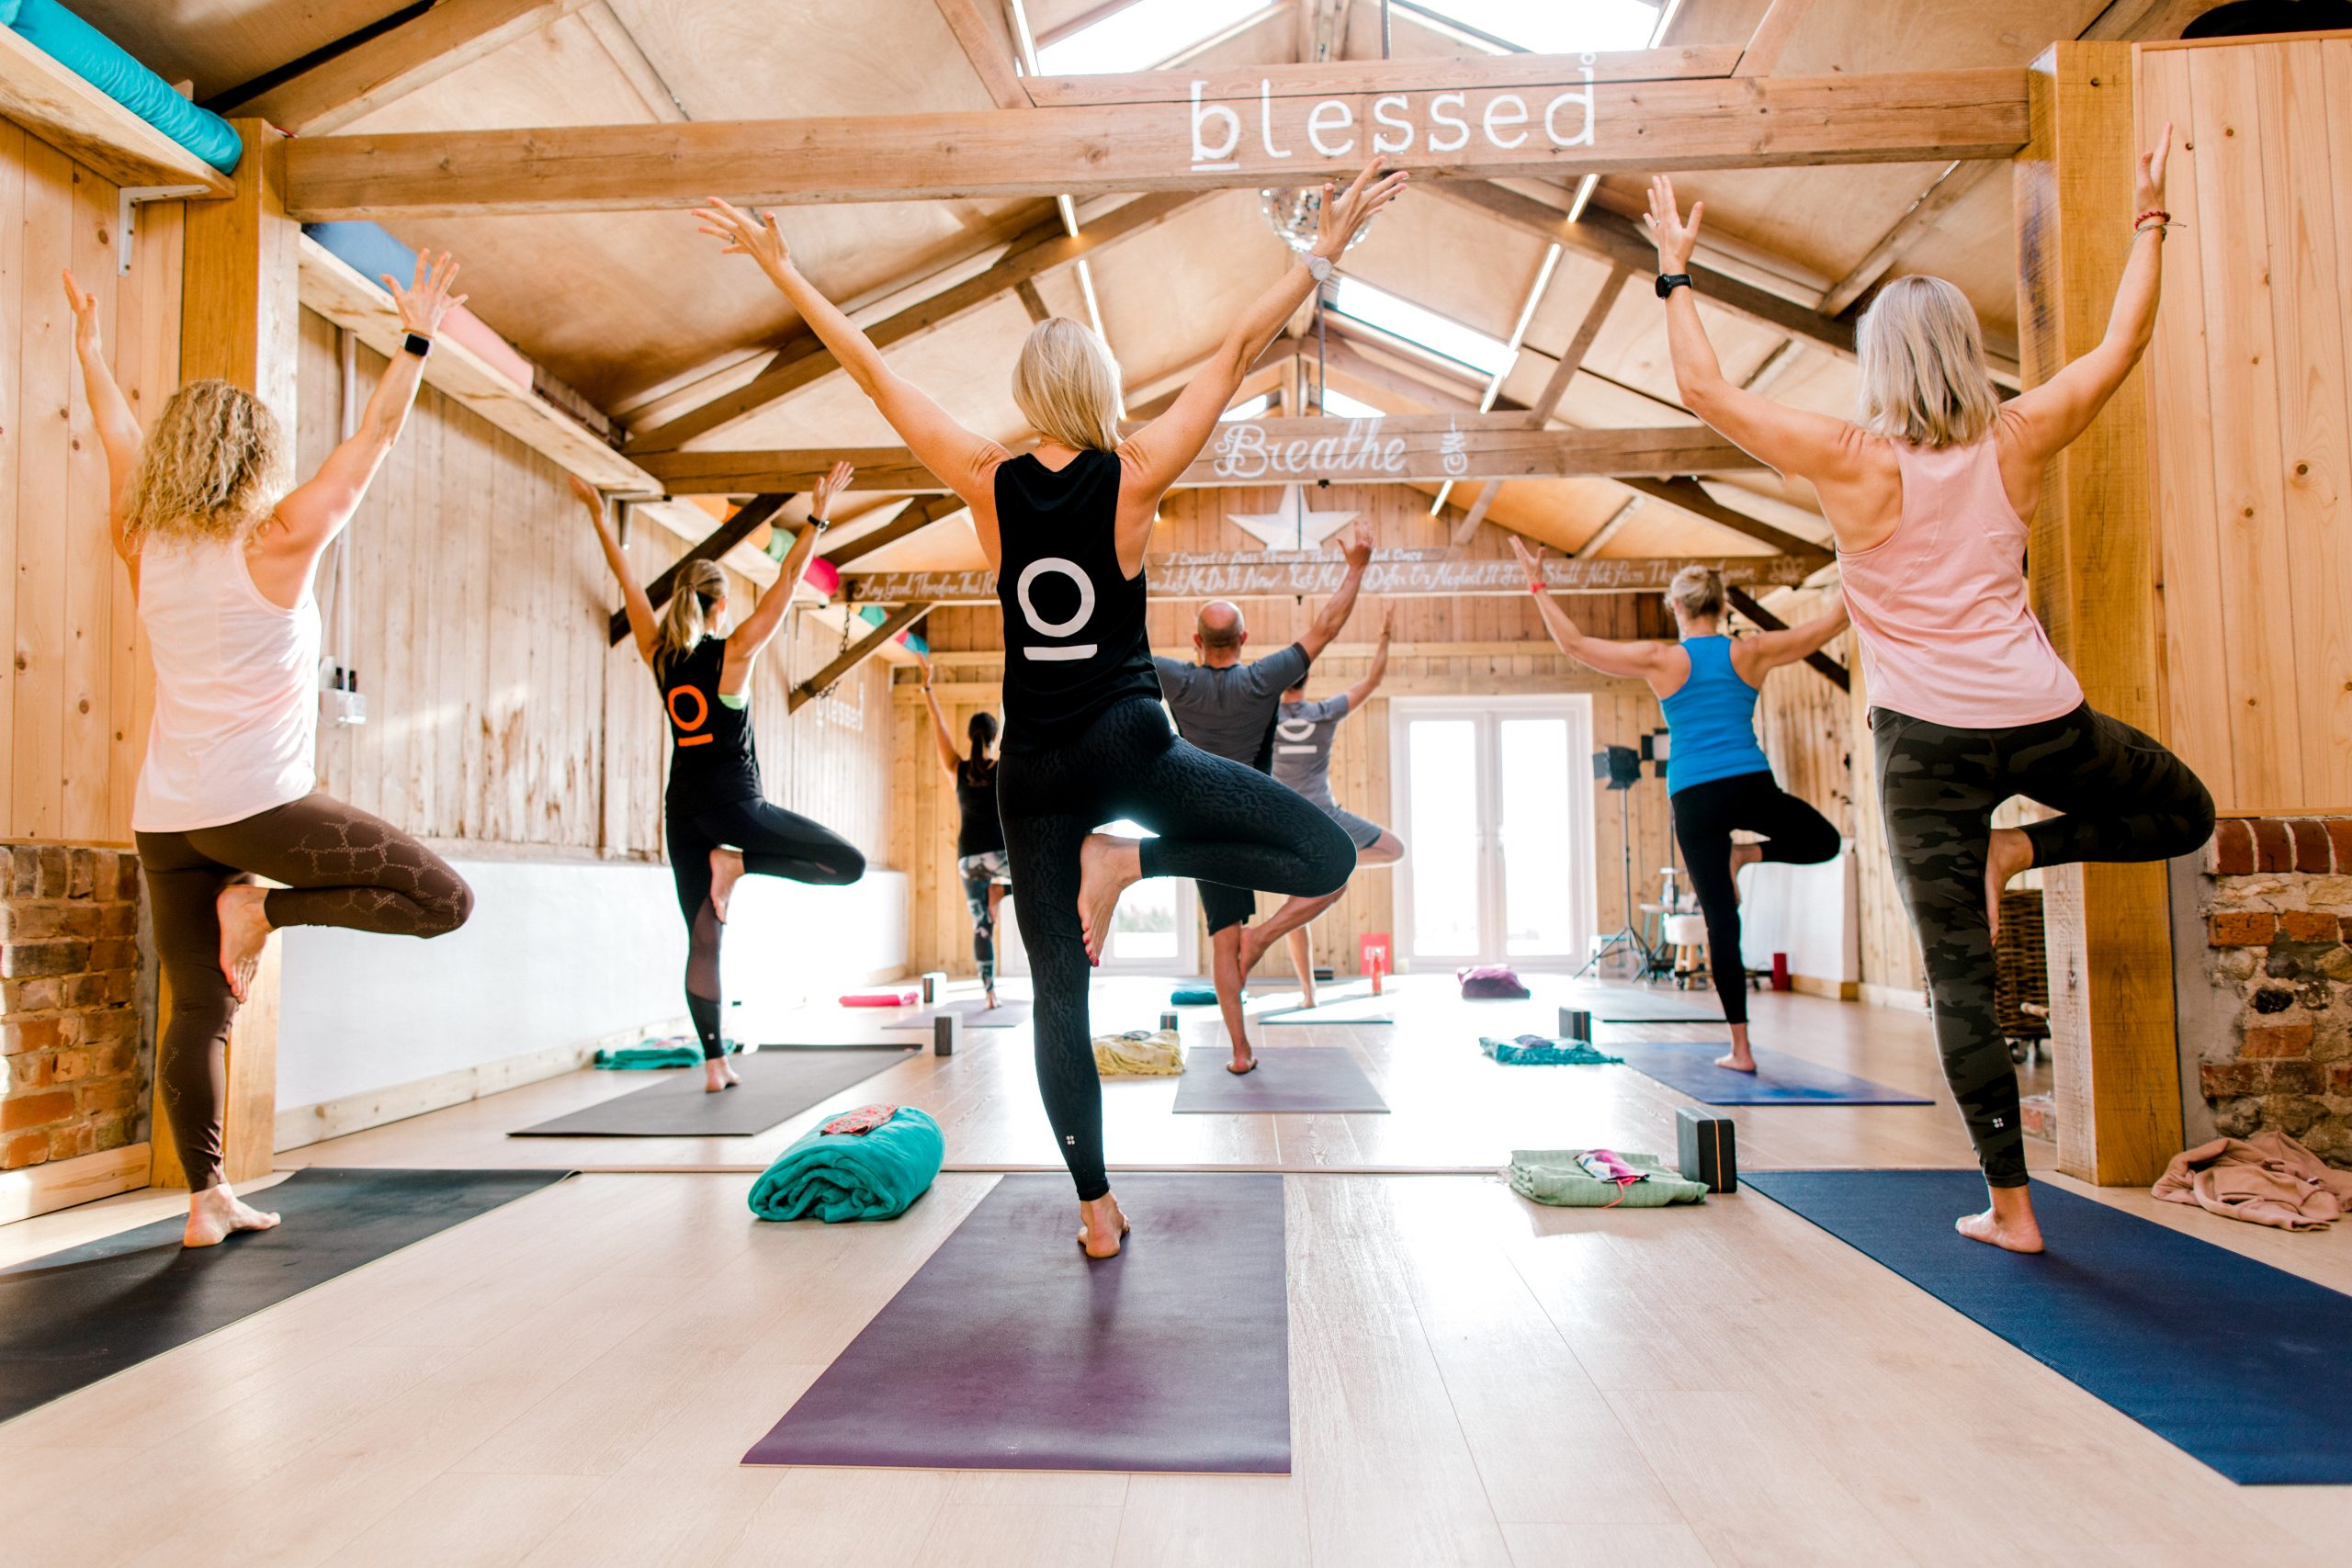 BEGIN NOW! The Blessed way to start your yoga journey